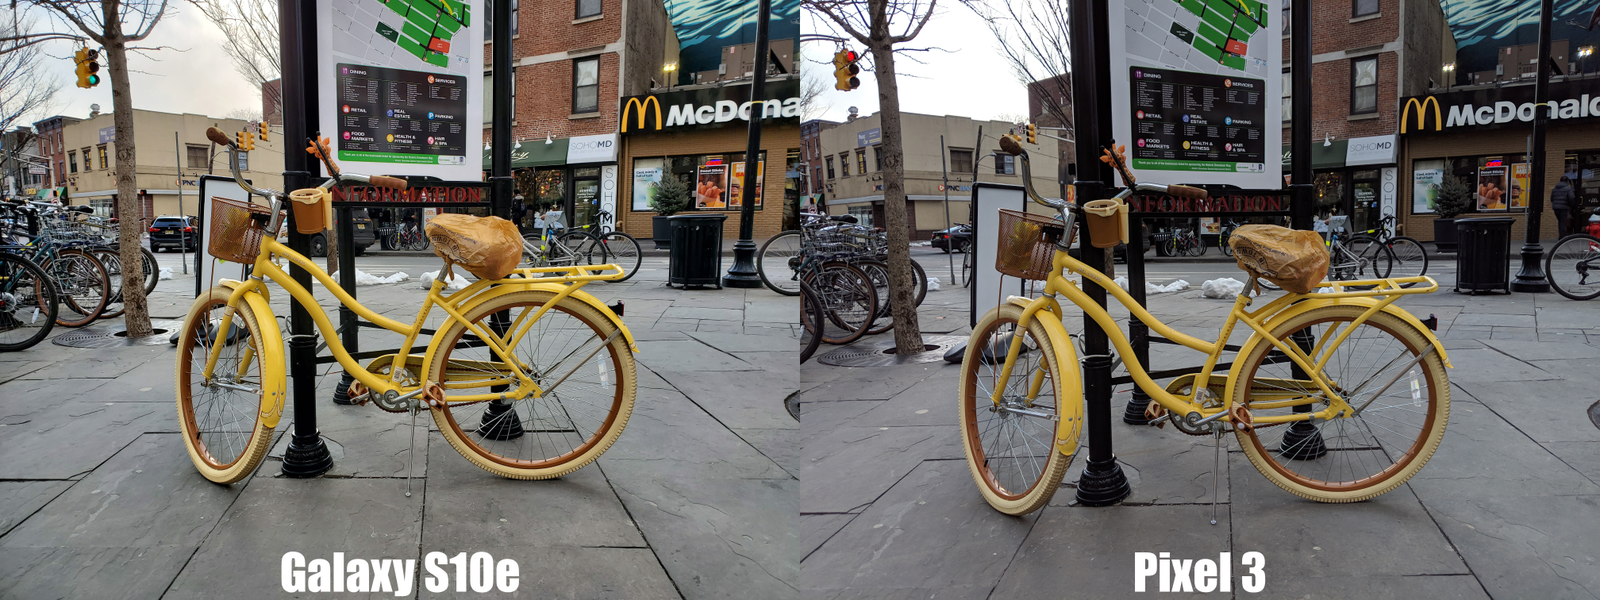 In this head-to-head, the S10e comes out ahead thanks to better details and the background, and the extra pop you get on the yellow bike.